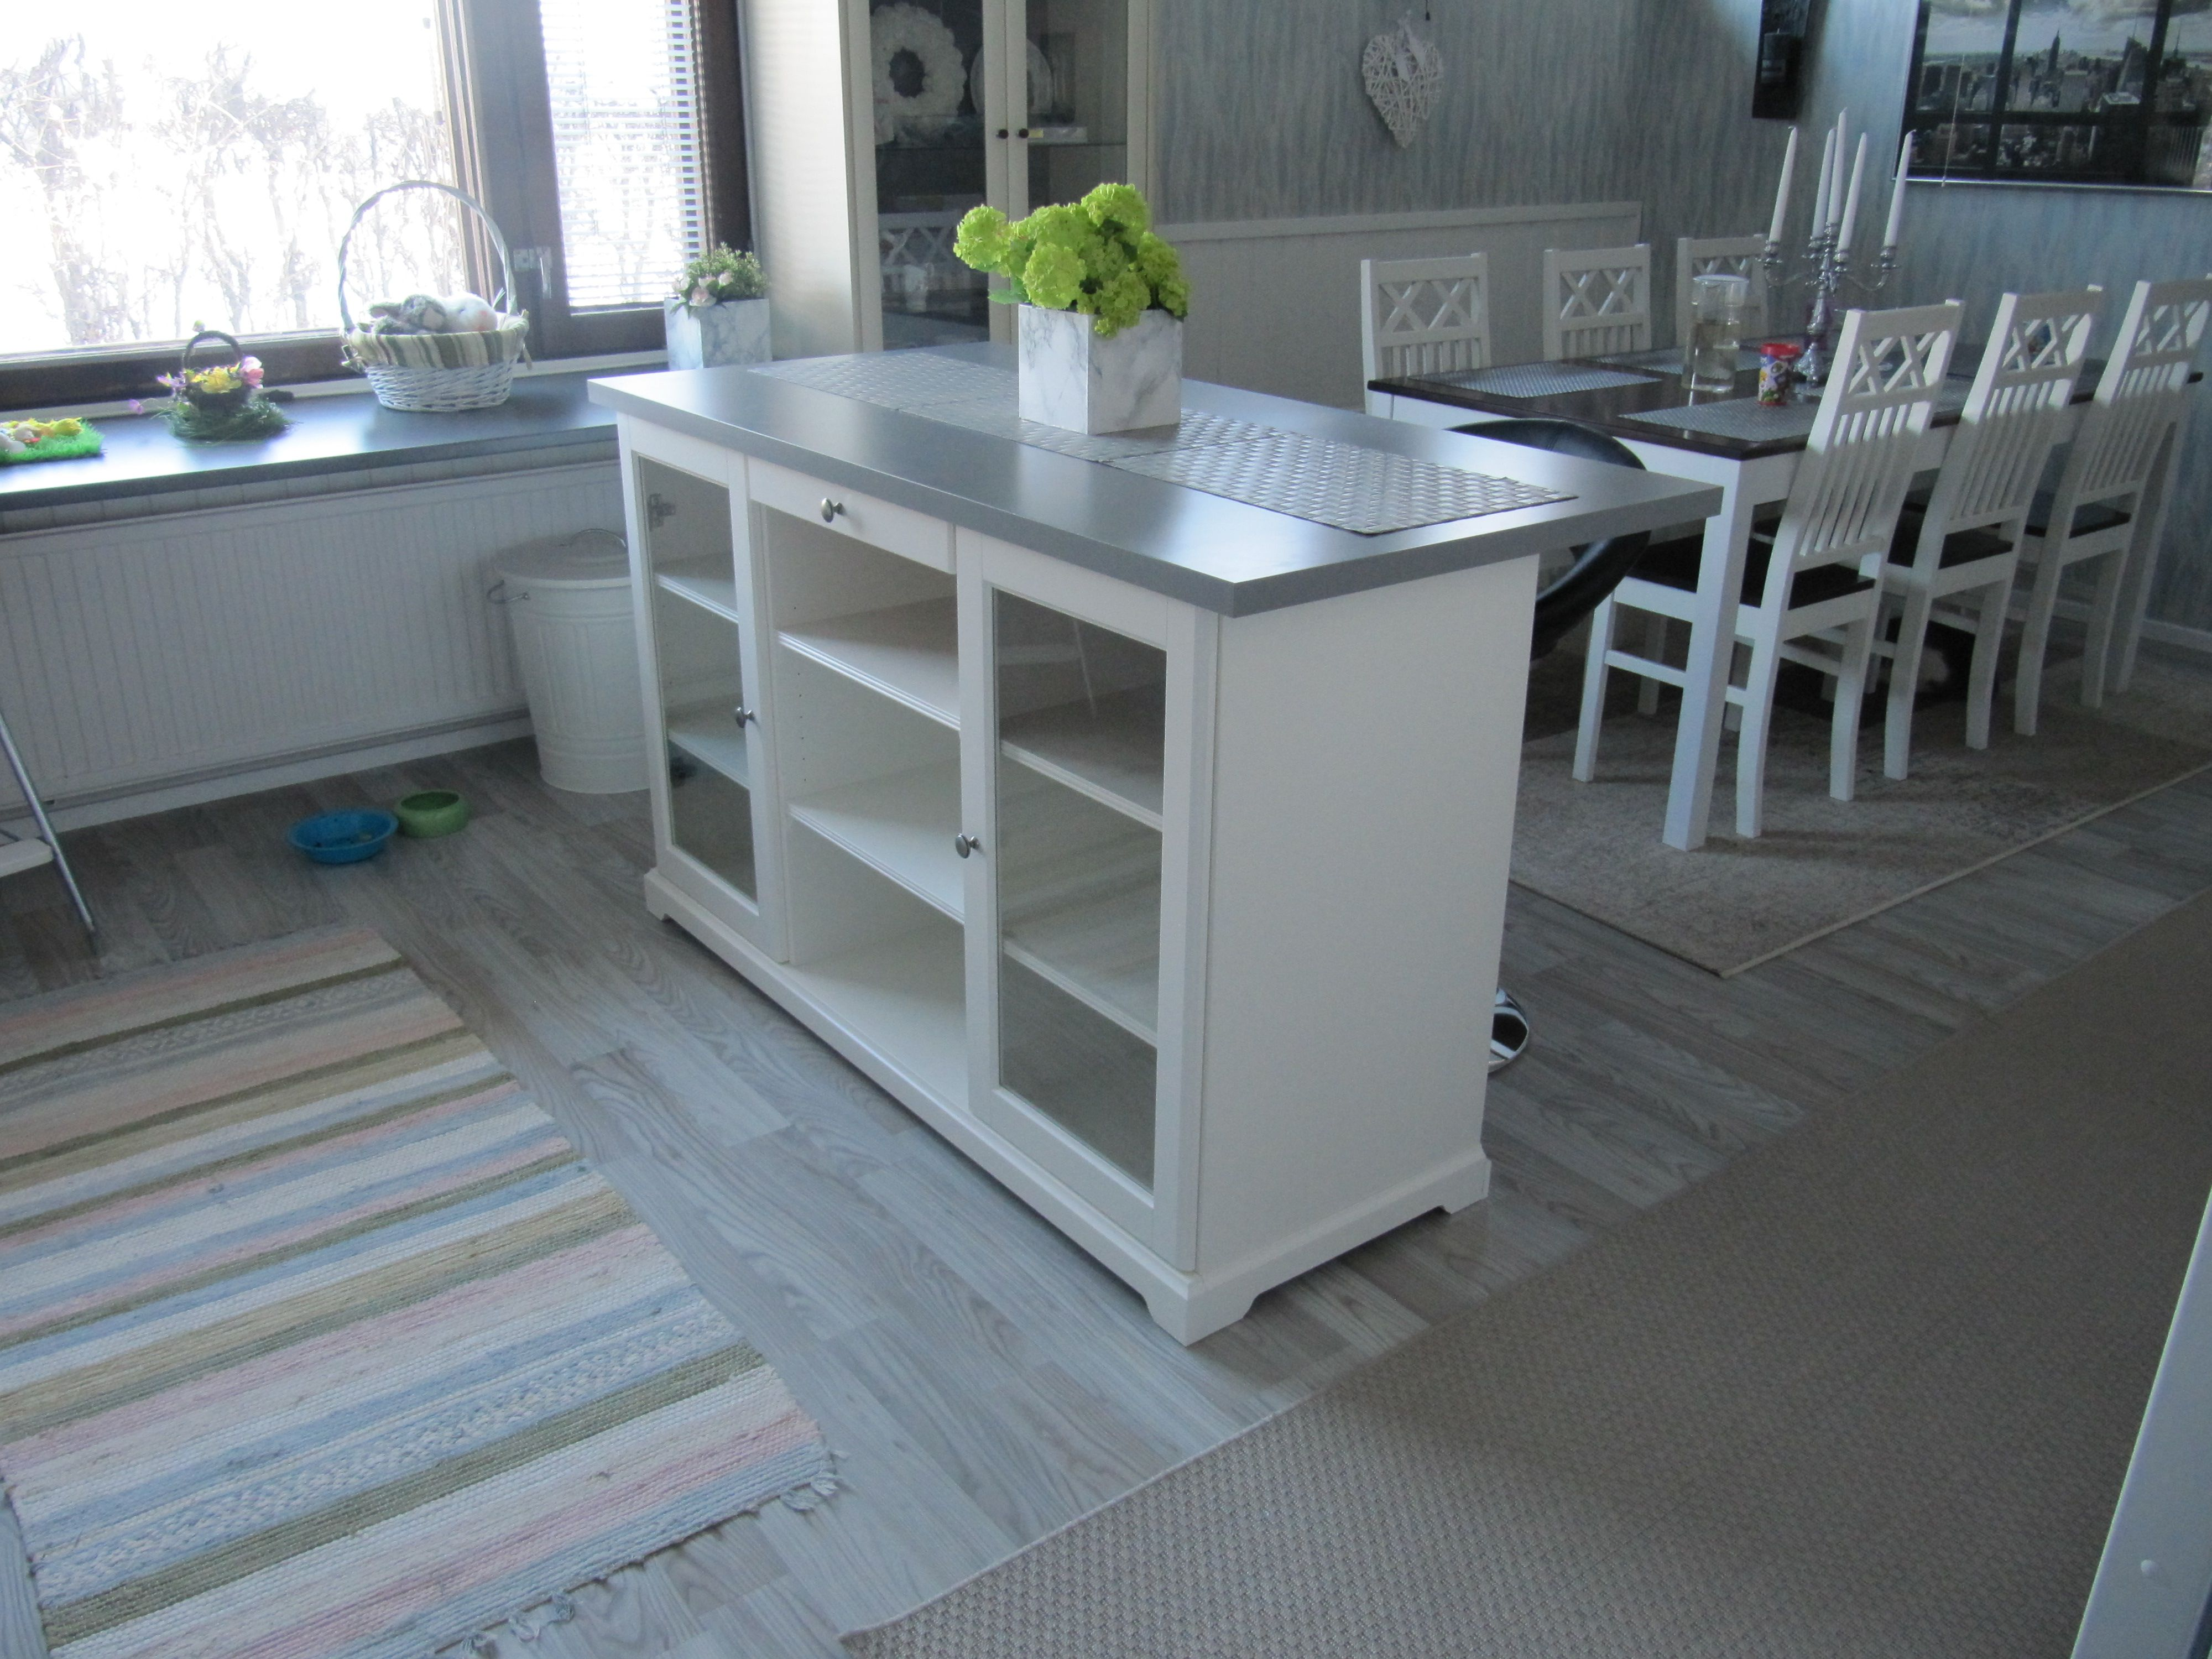 Building A Kitchen Island With Ikea Cabinets Kitchen After Renovation. Ikea Hack Liatorp Senkki